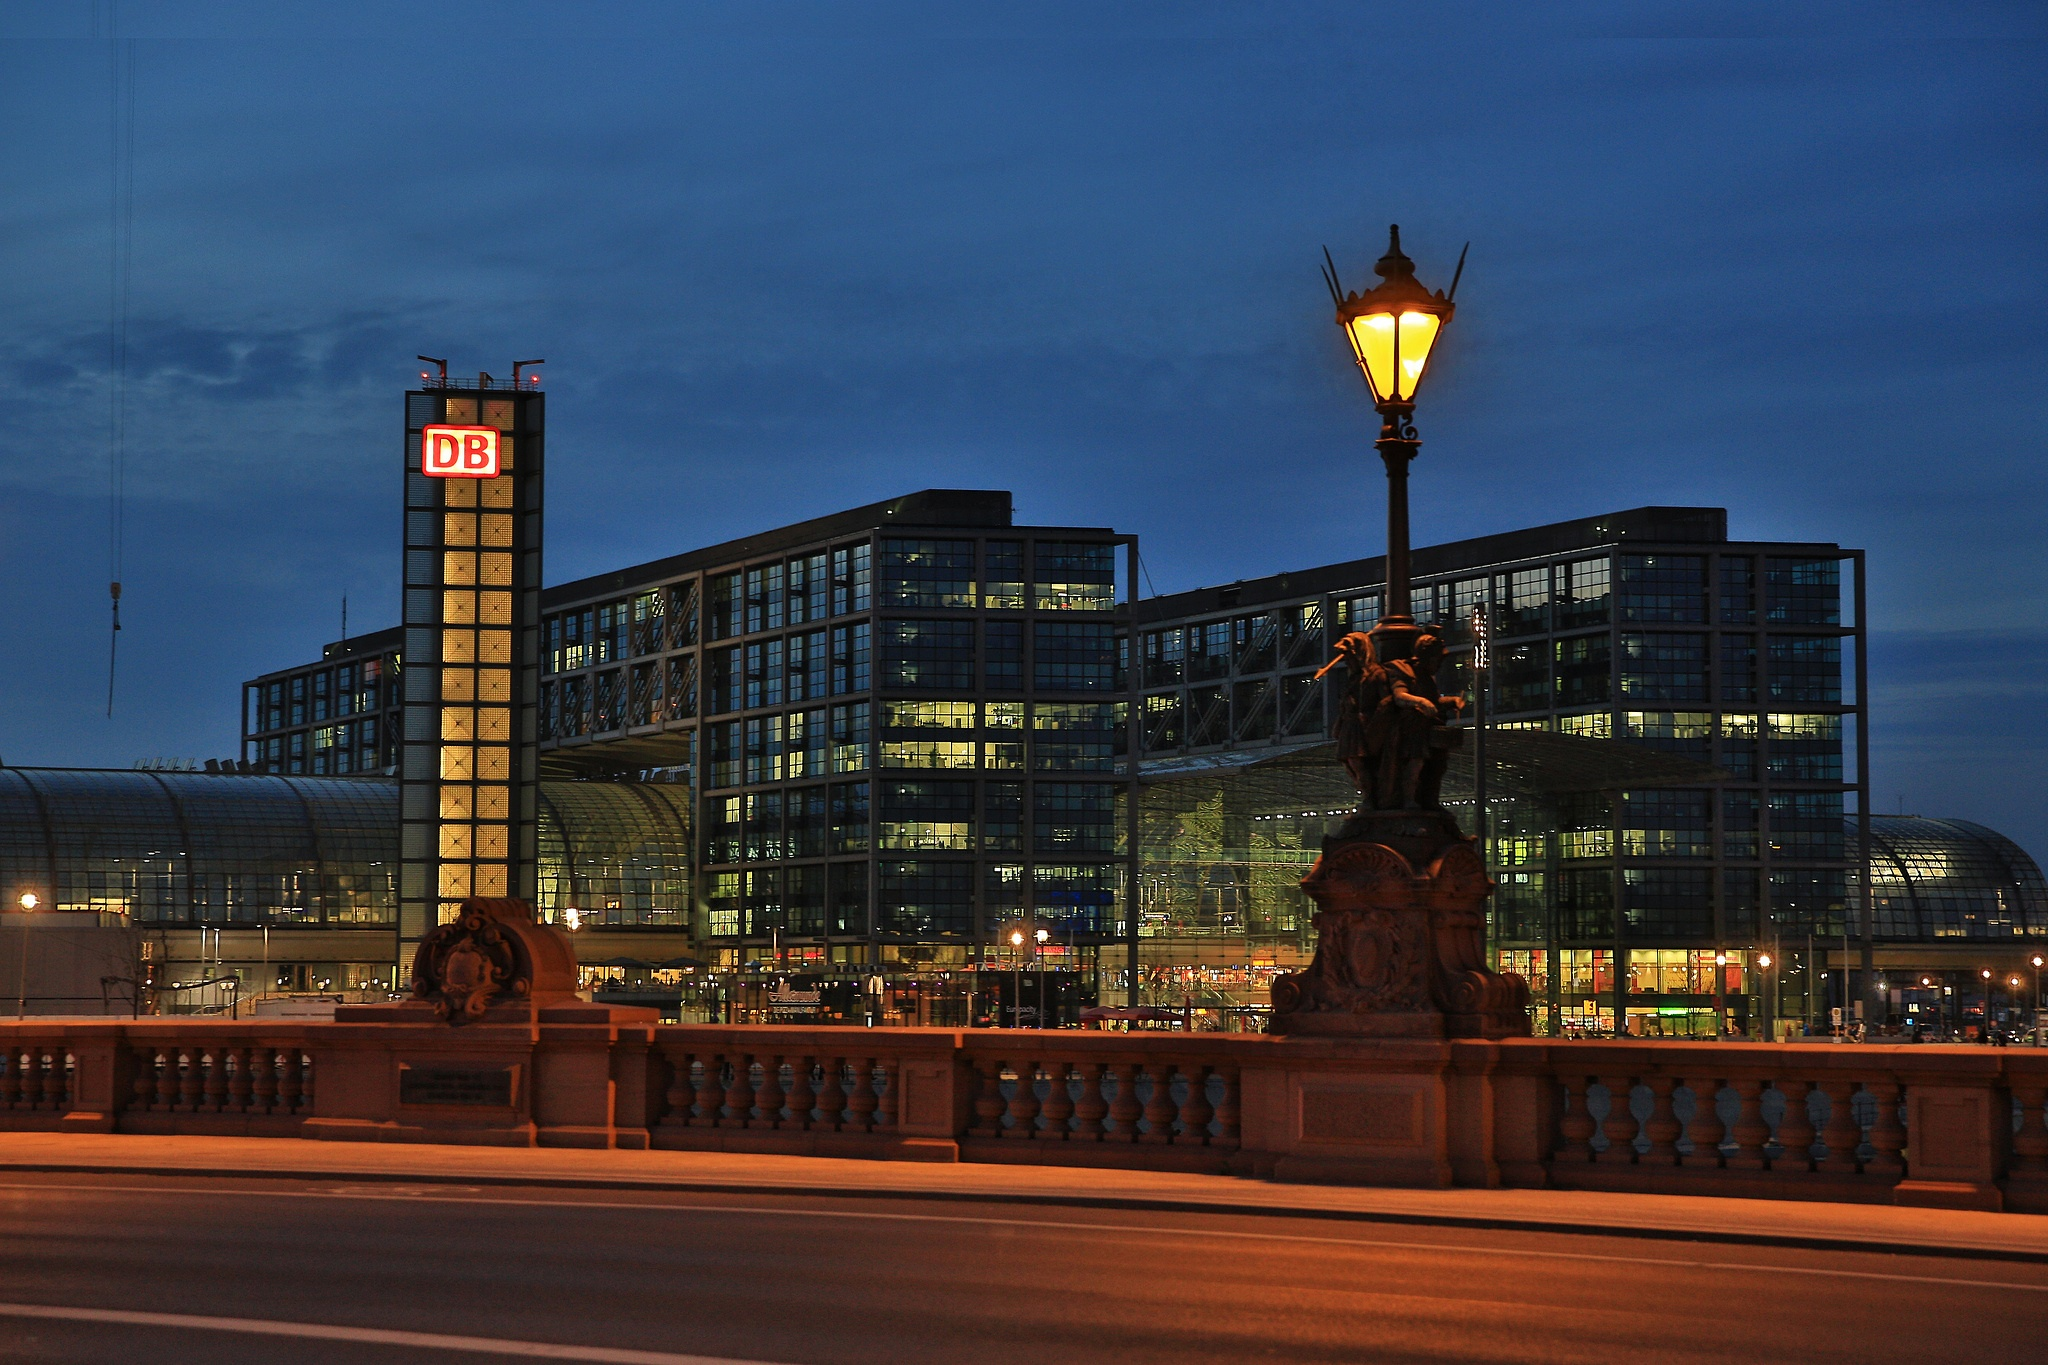 Central Evening in Berlin by DieBuben